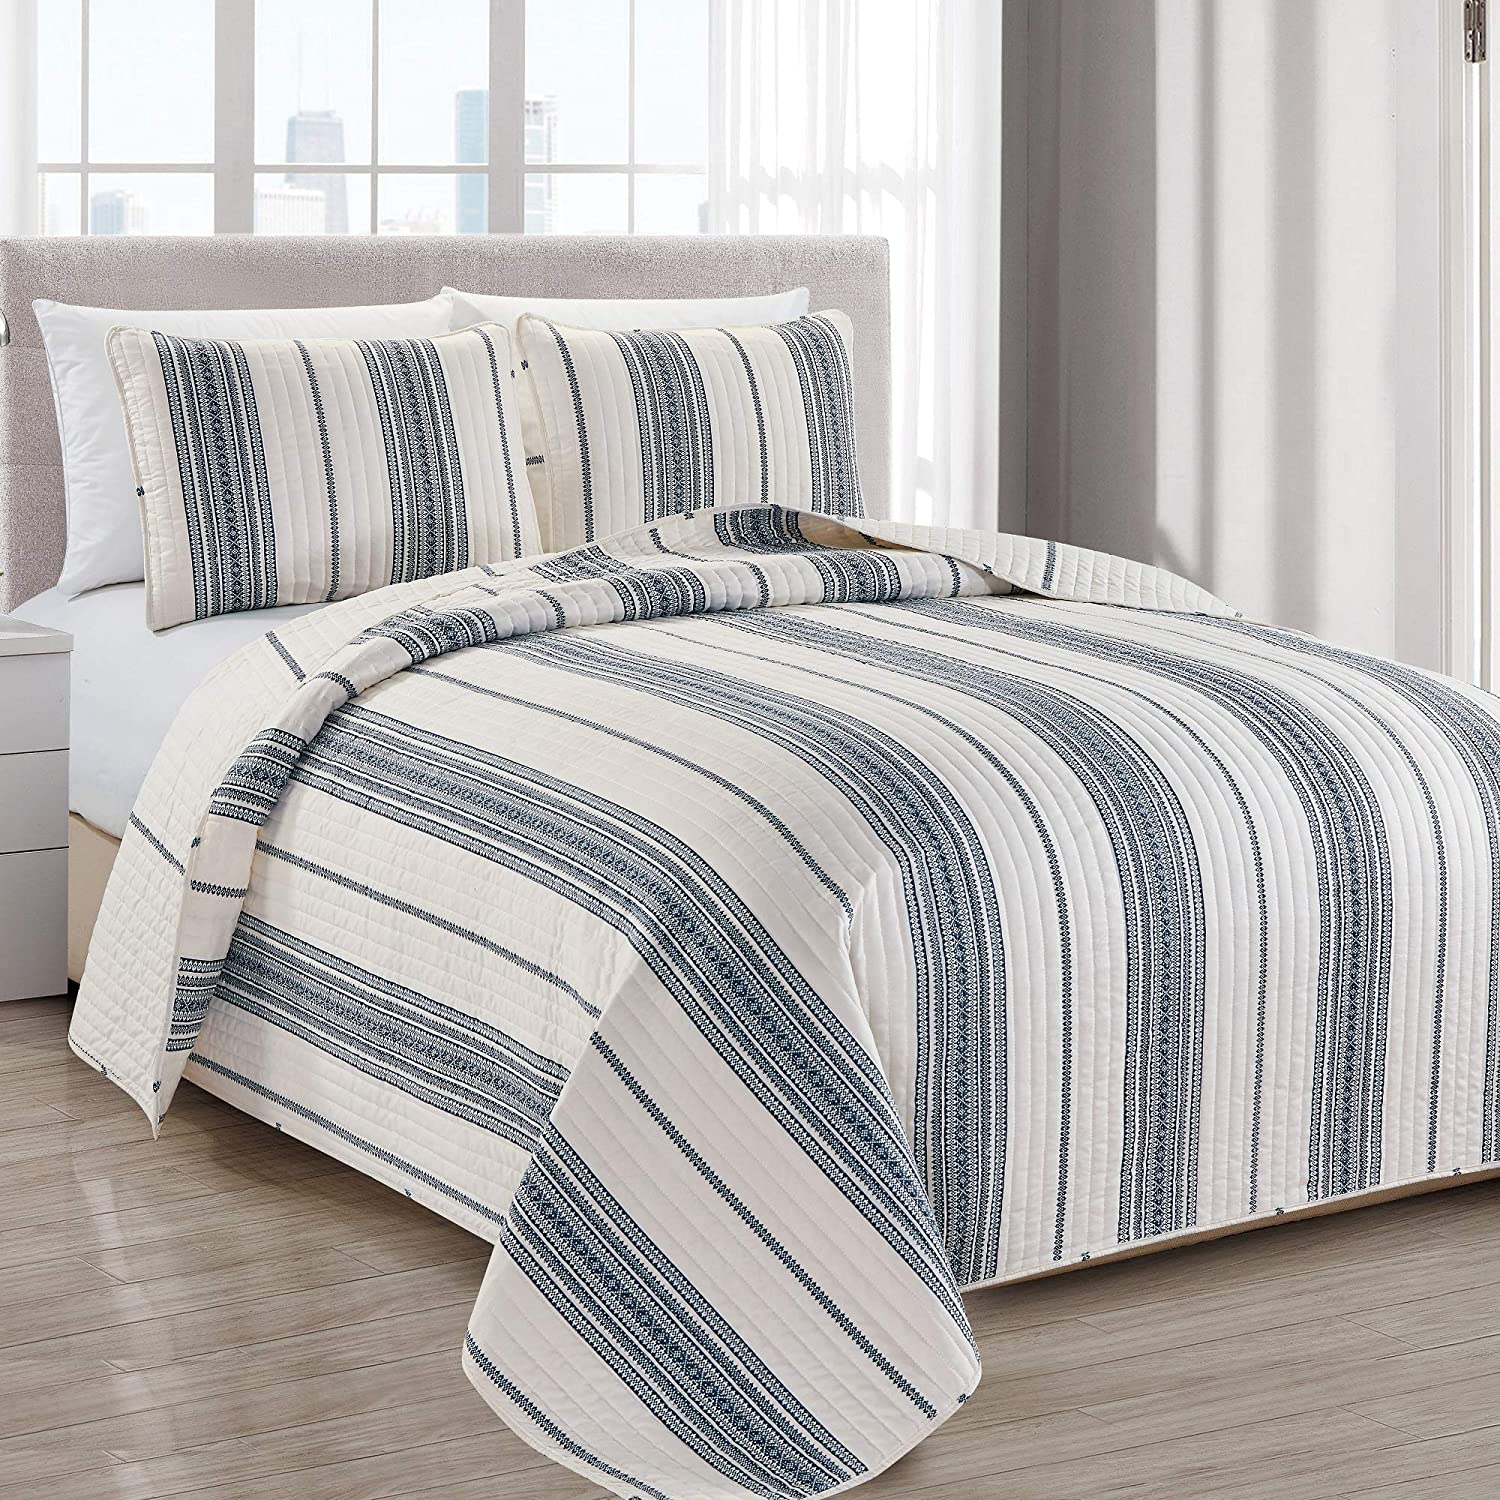 Great Bay Home Modern Bedspread Full/Queen Size Quilt with 2 Shams. Modern 3-Piece Reversible All Season Quilt Set. Black and White Quilt Coverlet Bed Set. Wesley Collection.